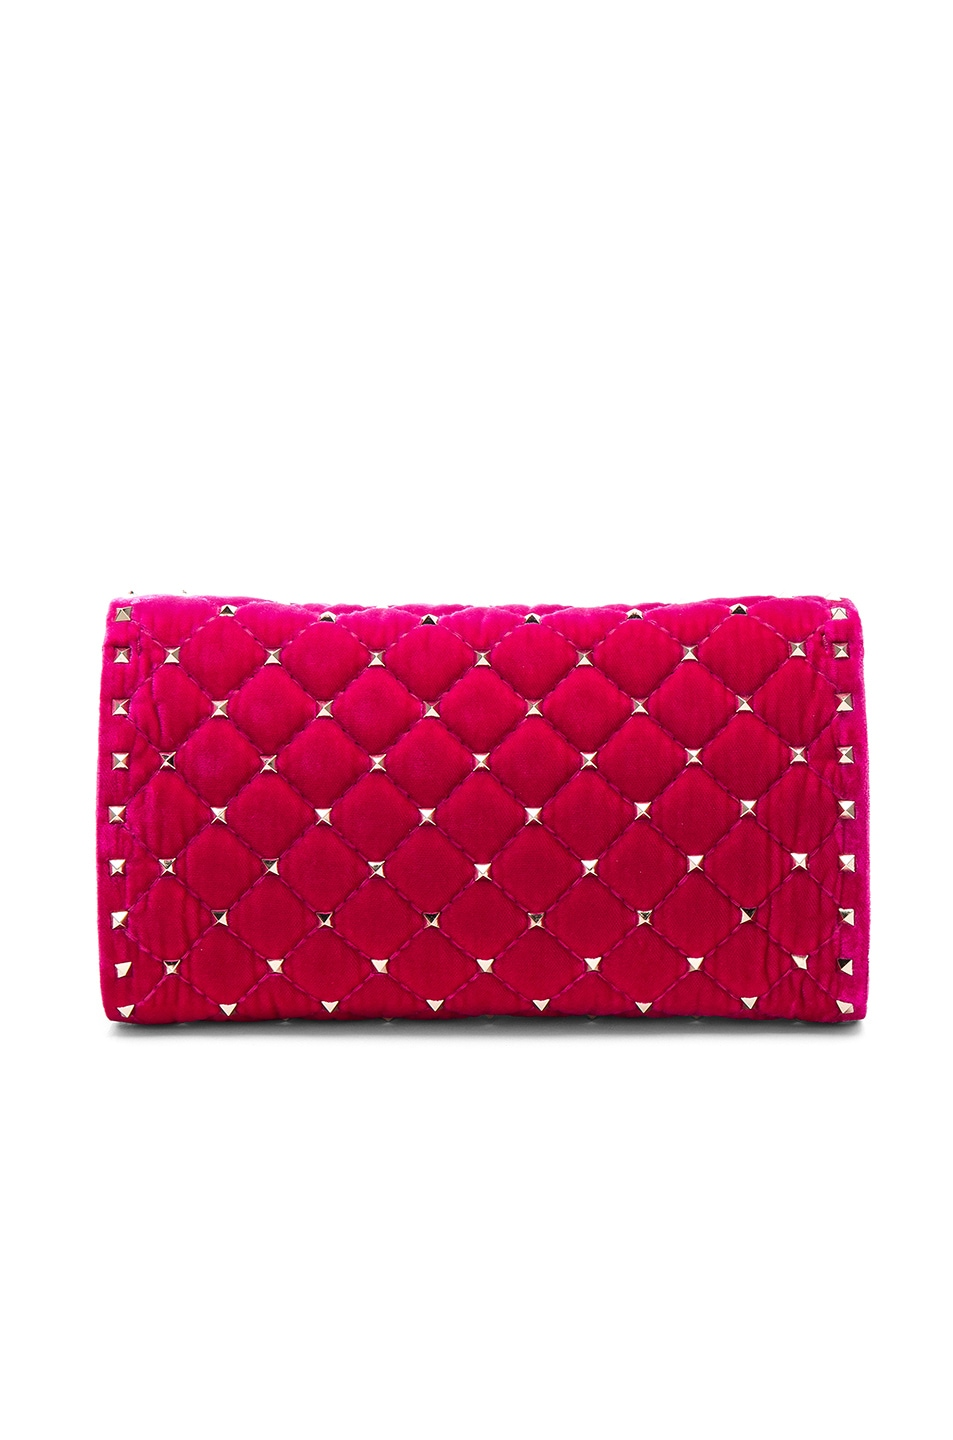 Image 3 of Valentino Velvet Quilted Rockstud Spike Clutch in Disco Pink